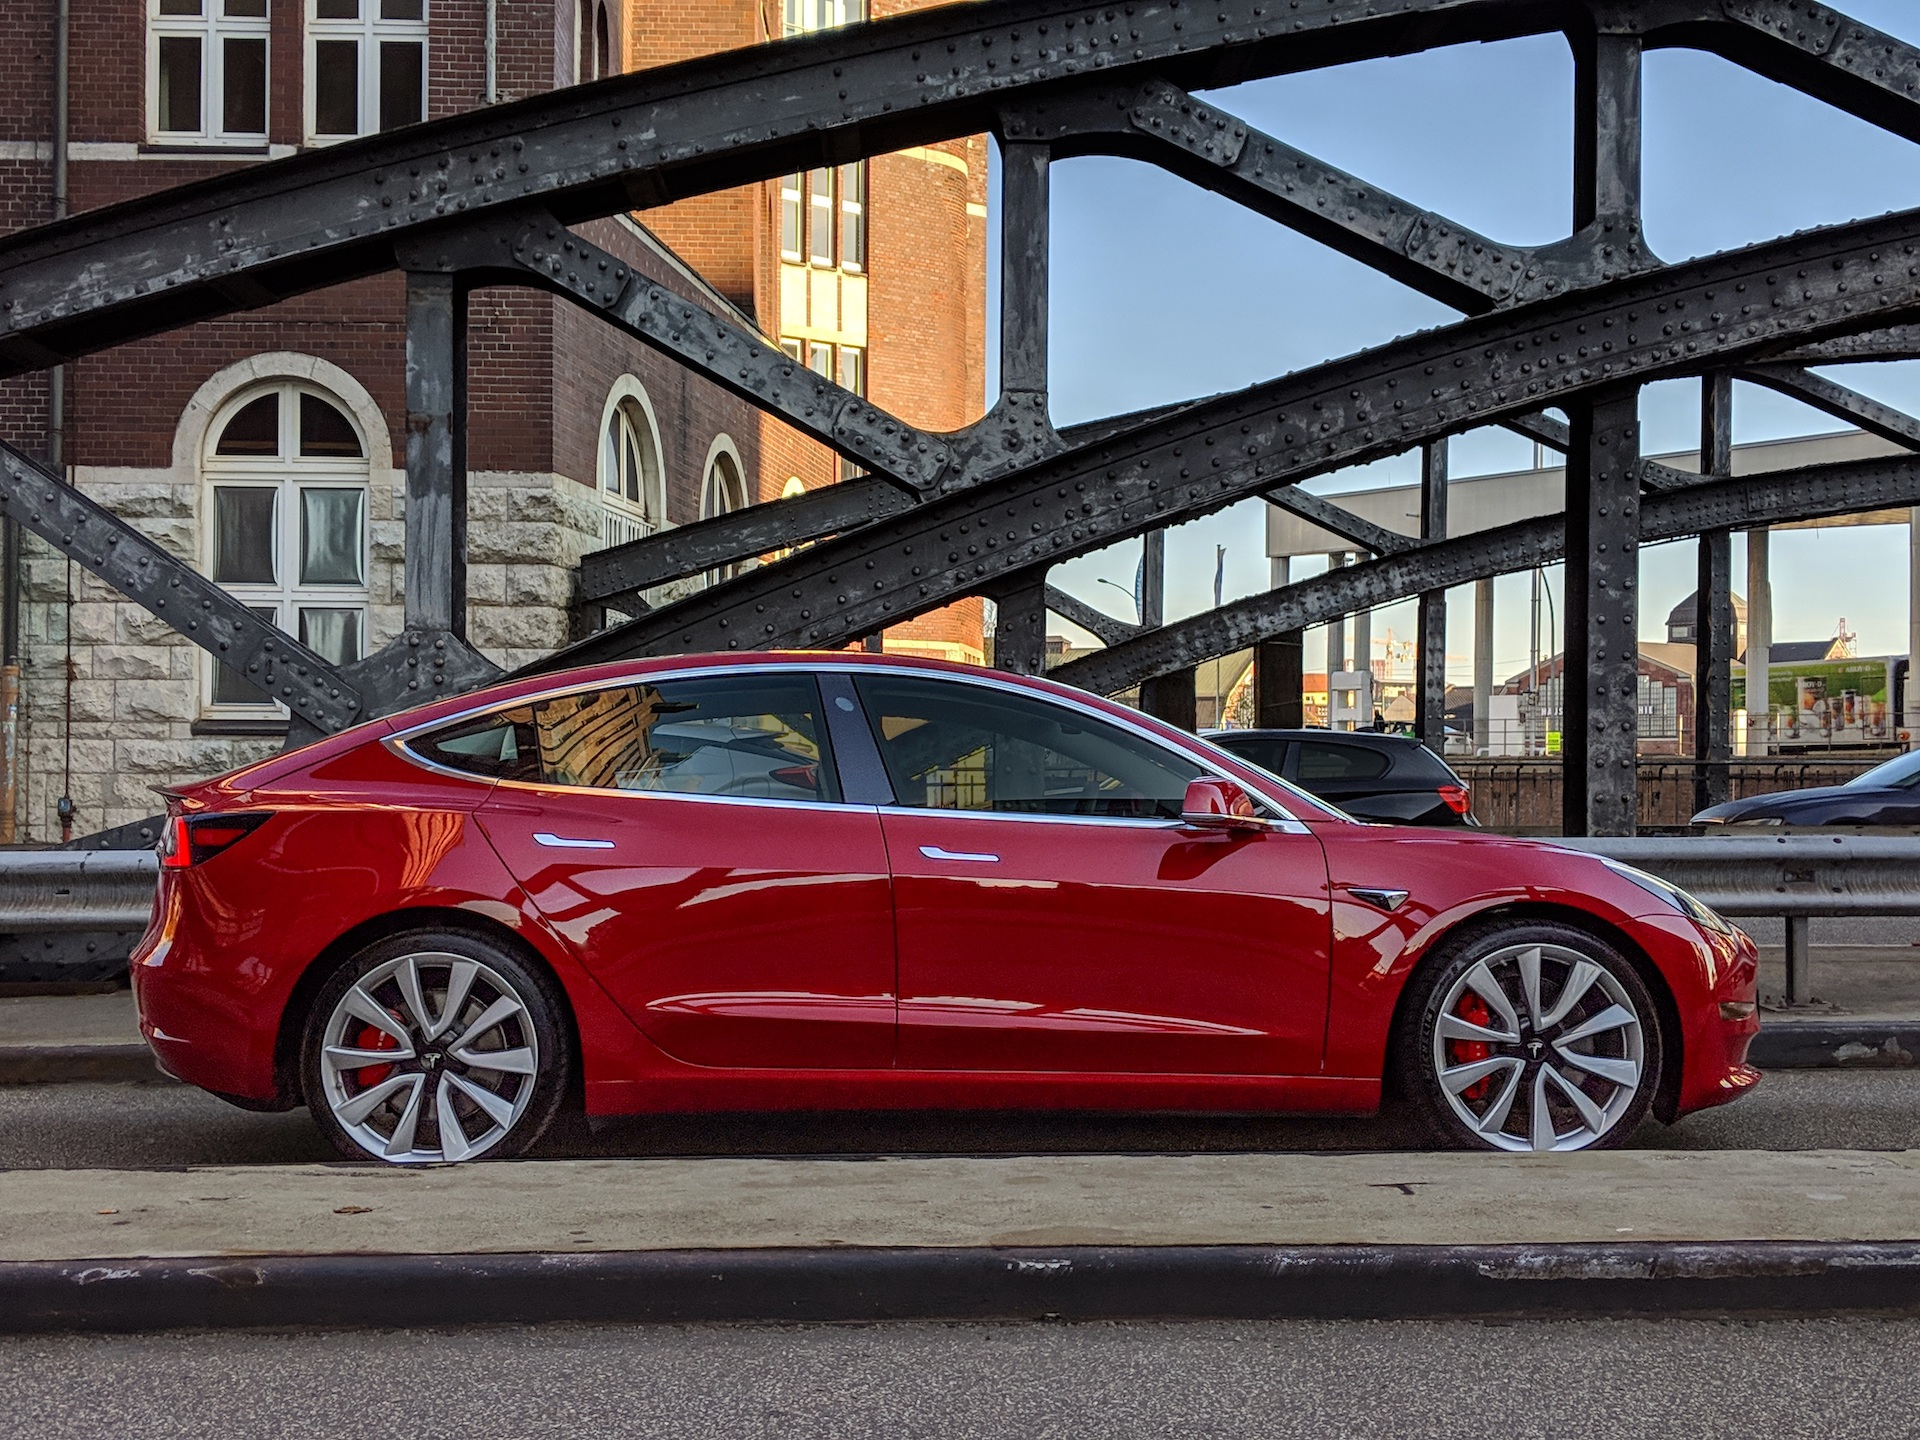 en france le prix de la model 3 de tesla commencera d 39 abord 53 500 euros vroom numerama. Black Bedroom Furniture Sets. Home Design Ideas